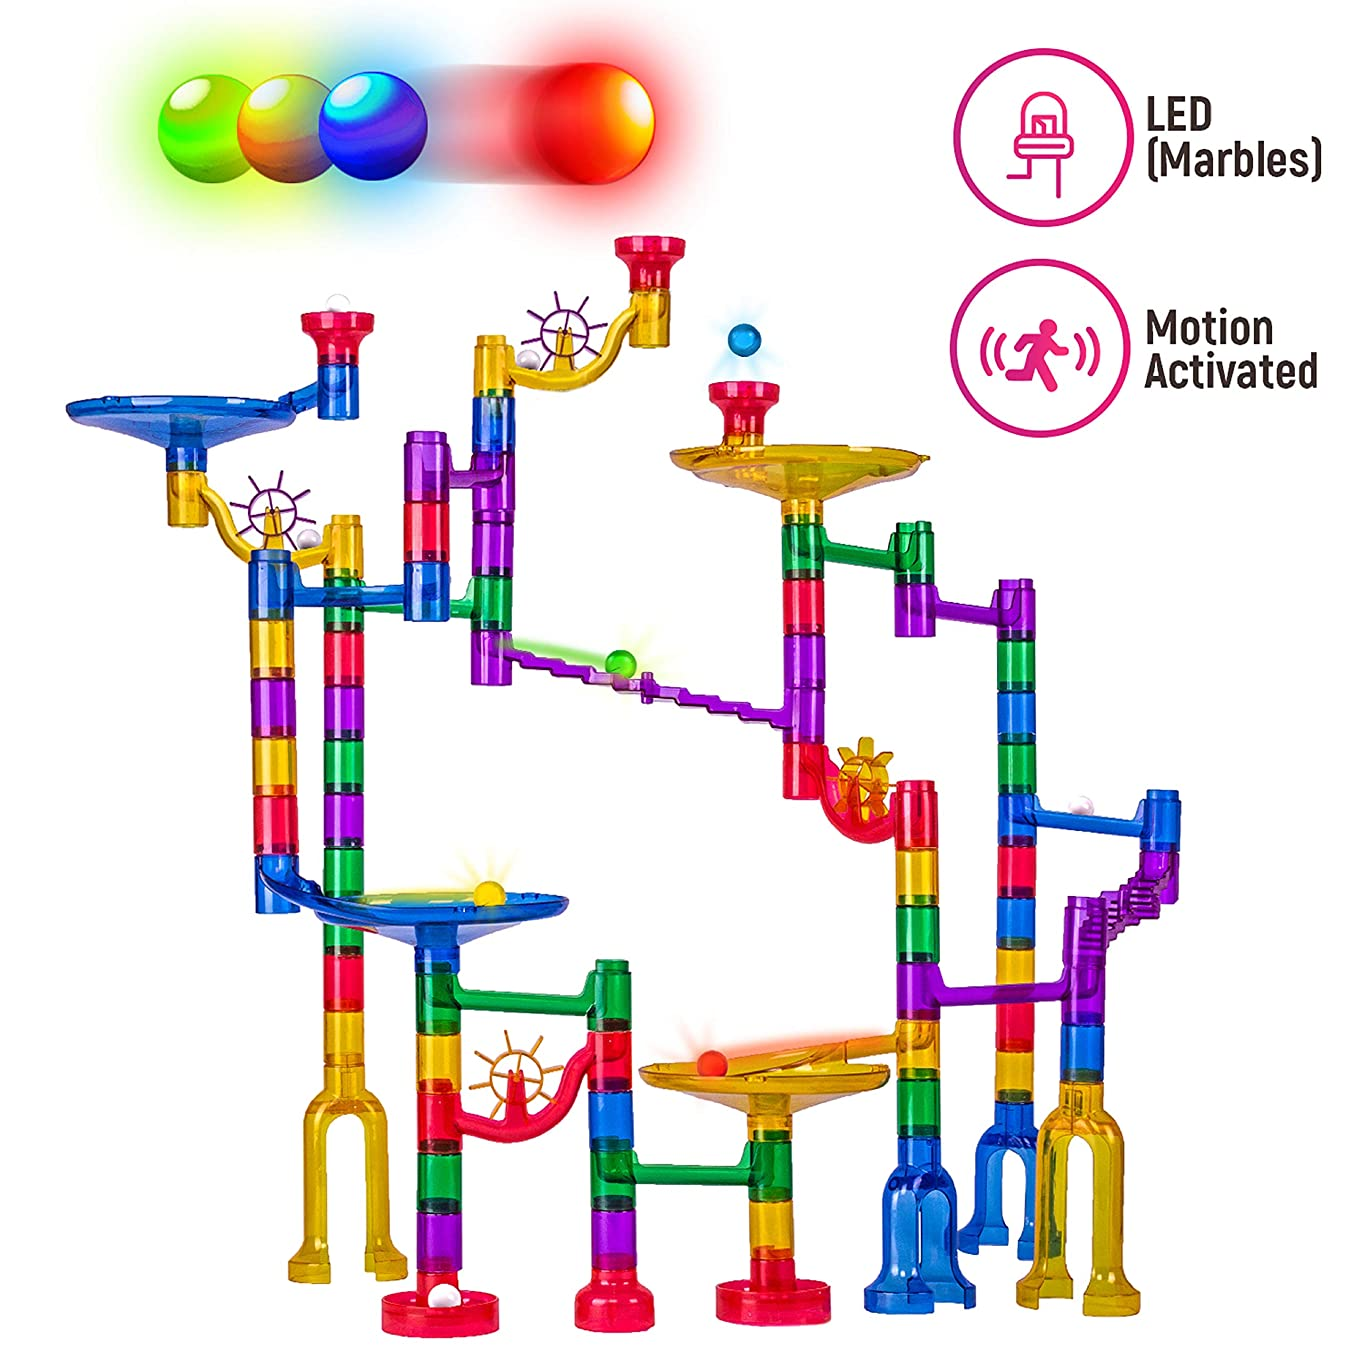 Thinkbox Toys Marble Race Game -LED Marbles Light Up This Marble Run Sets for Kids - STEM Toy or Gift for Boys and Girls - Impact Resistant BPA Free Building Blocks for Fun Friendly Learning and Play v23024853